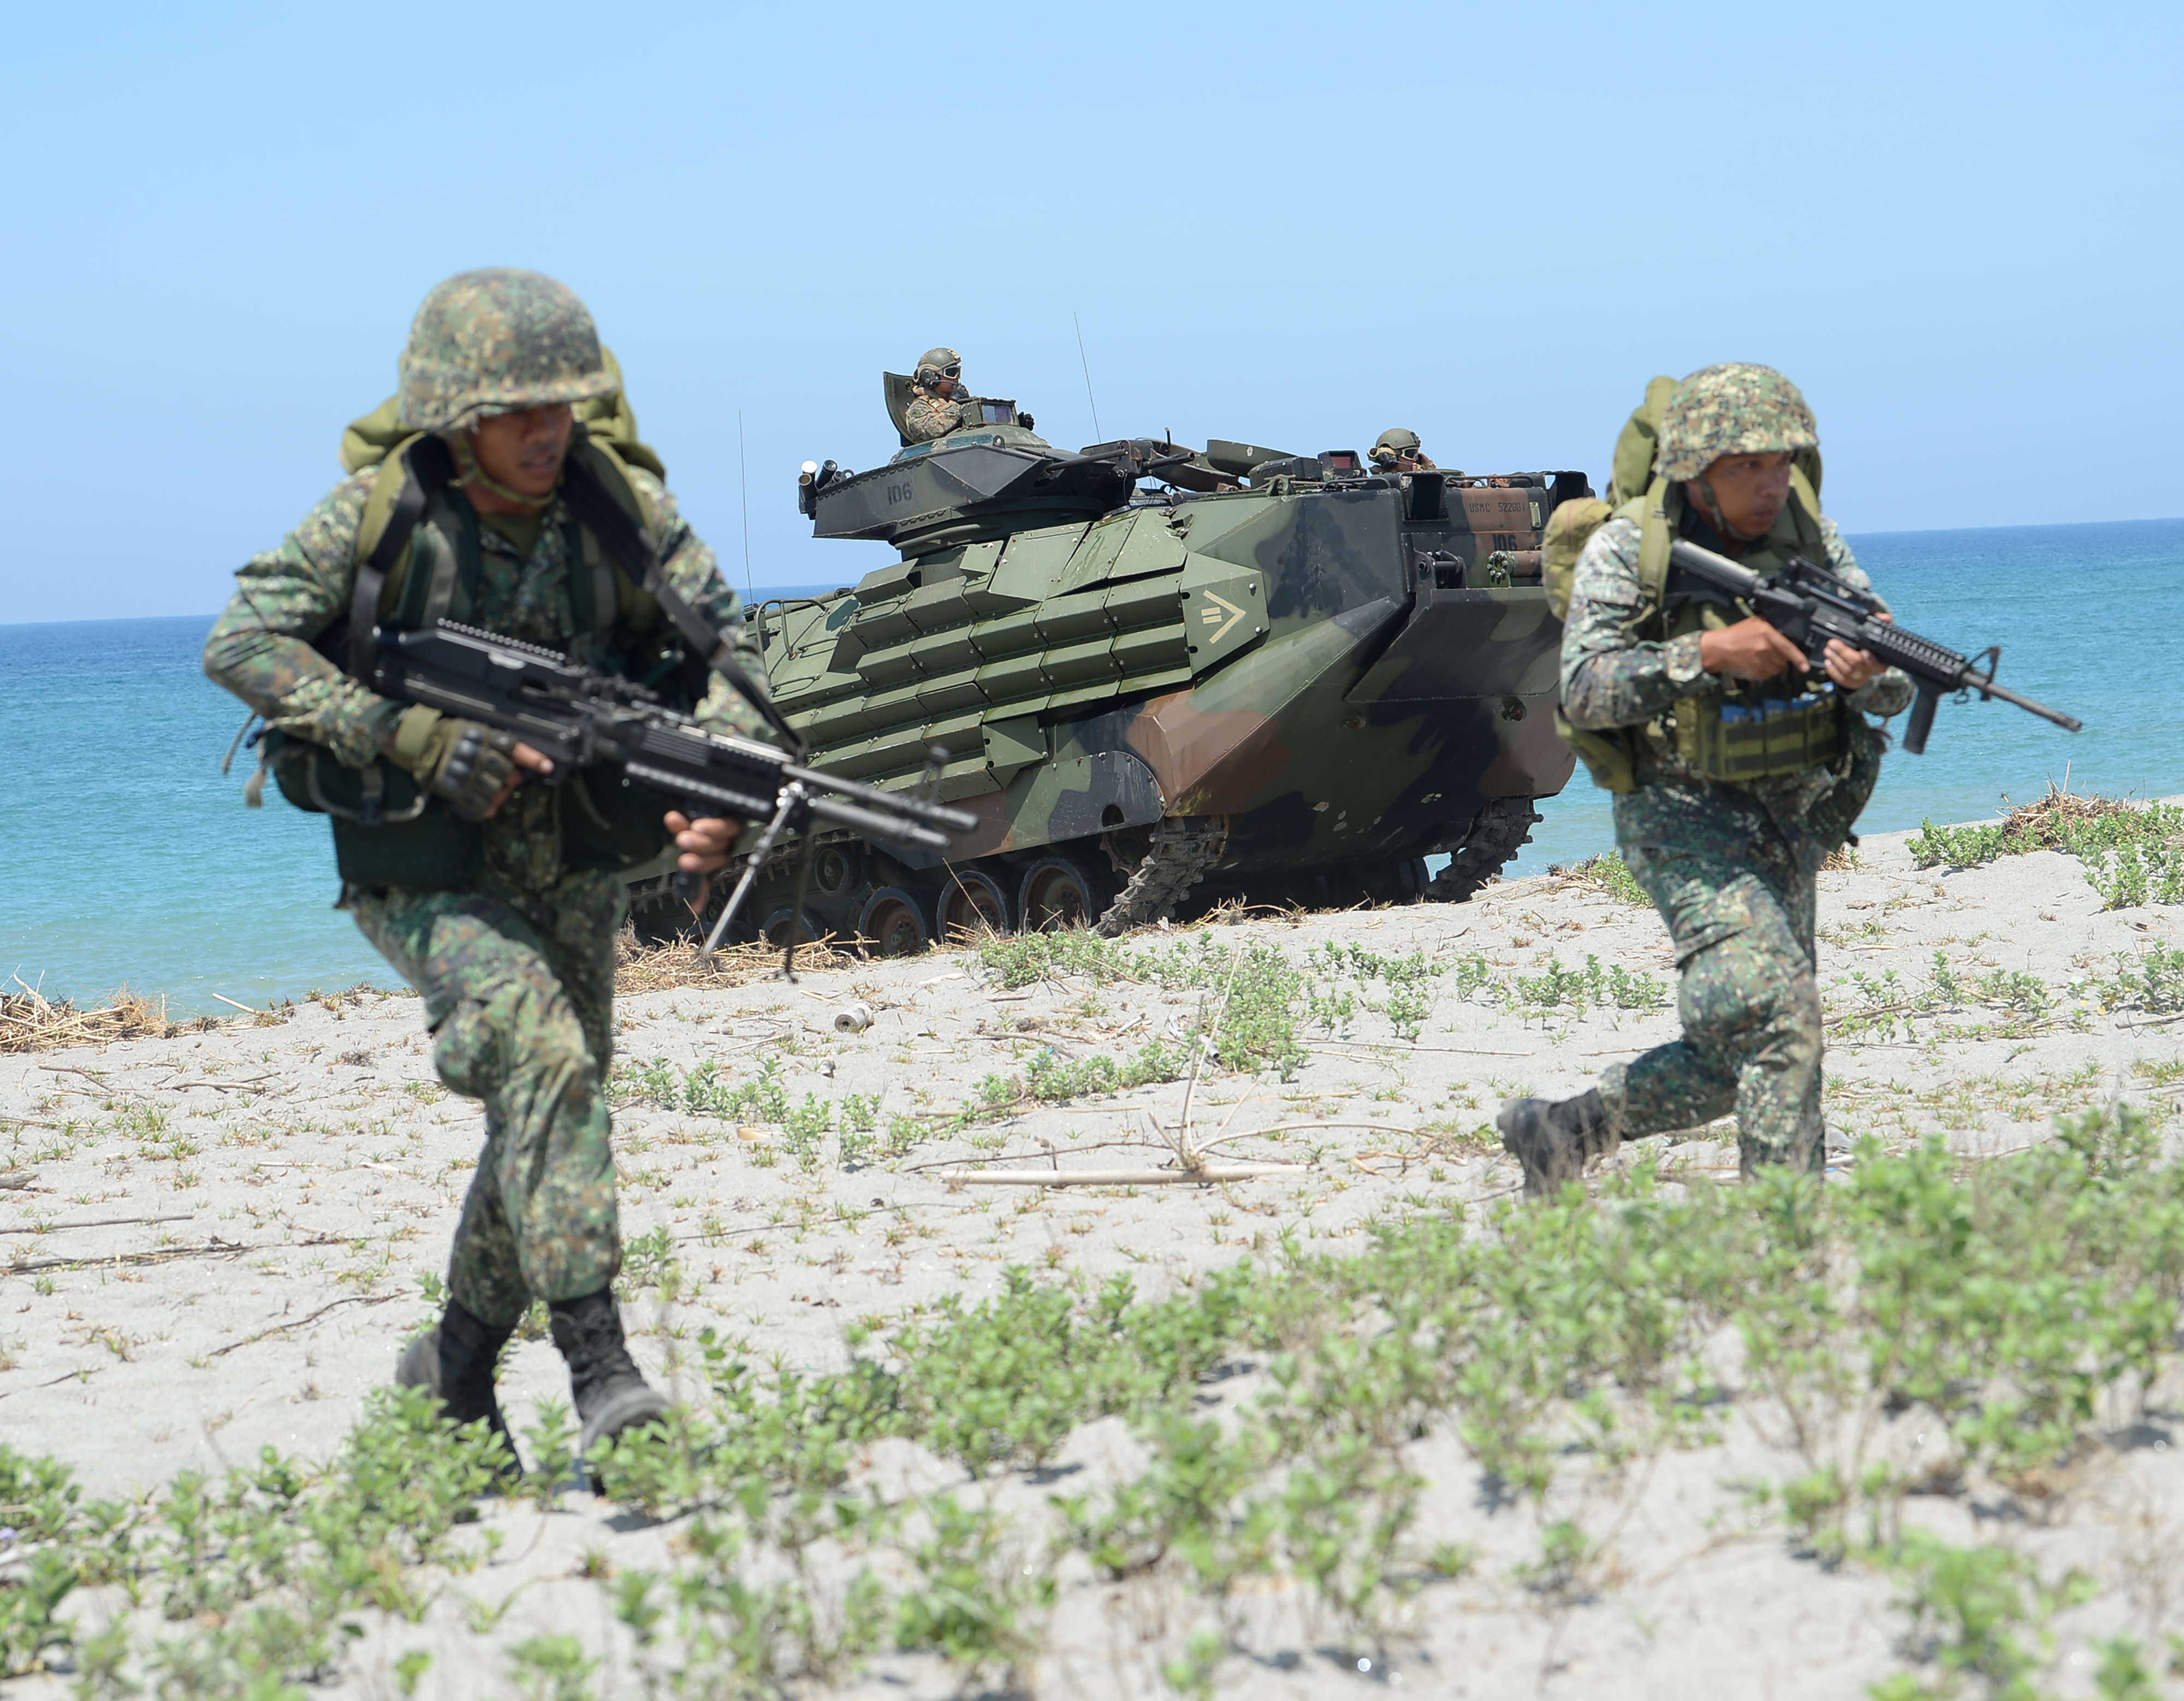 Philippine marines take position next to US Marines Amphibious Assault Vehicles (AAV) during an amphibious landing exercise at the beach of the Philippine navy training center facing the South China Sea in San Antonio town, Zambales province, north o...